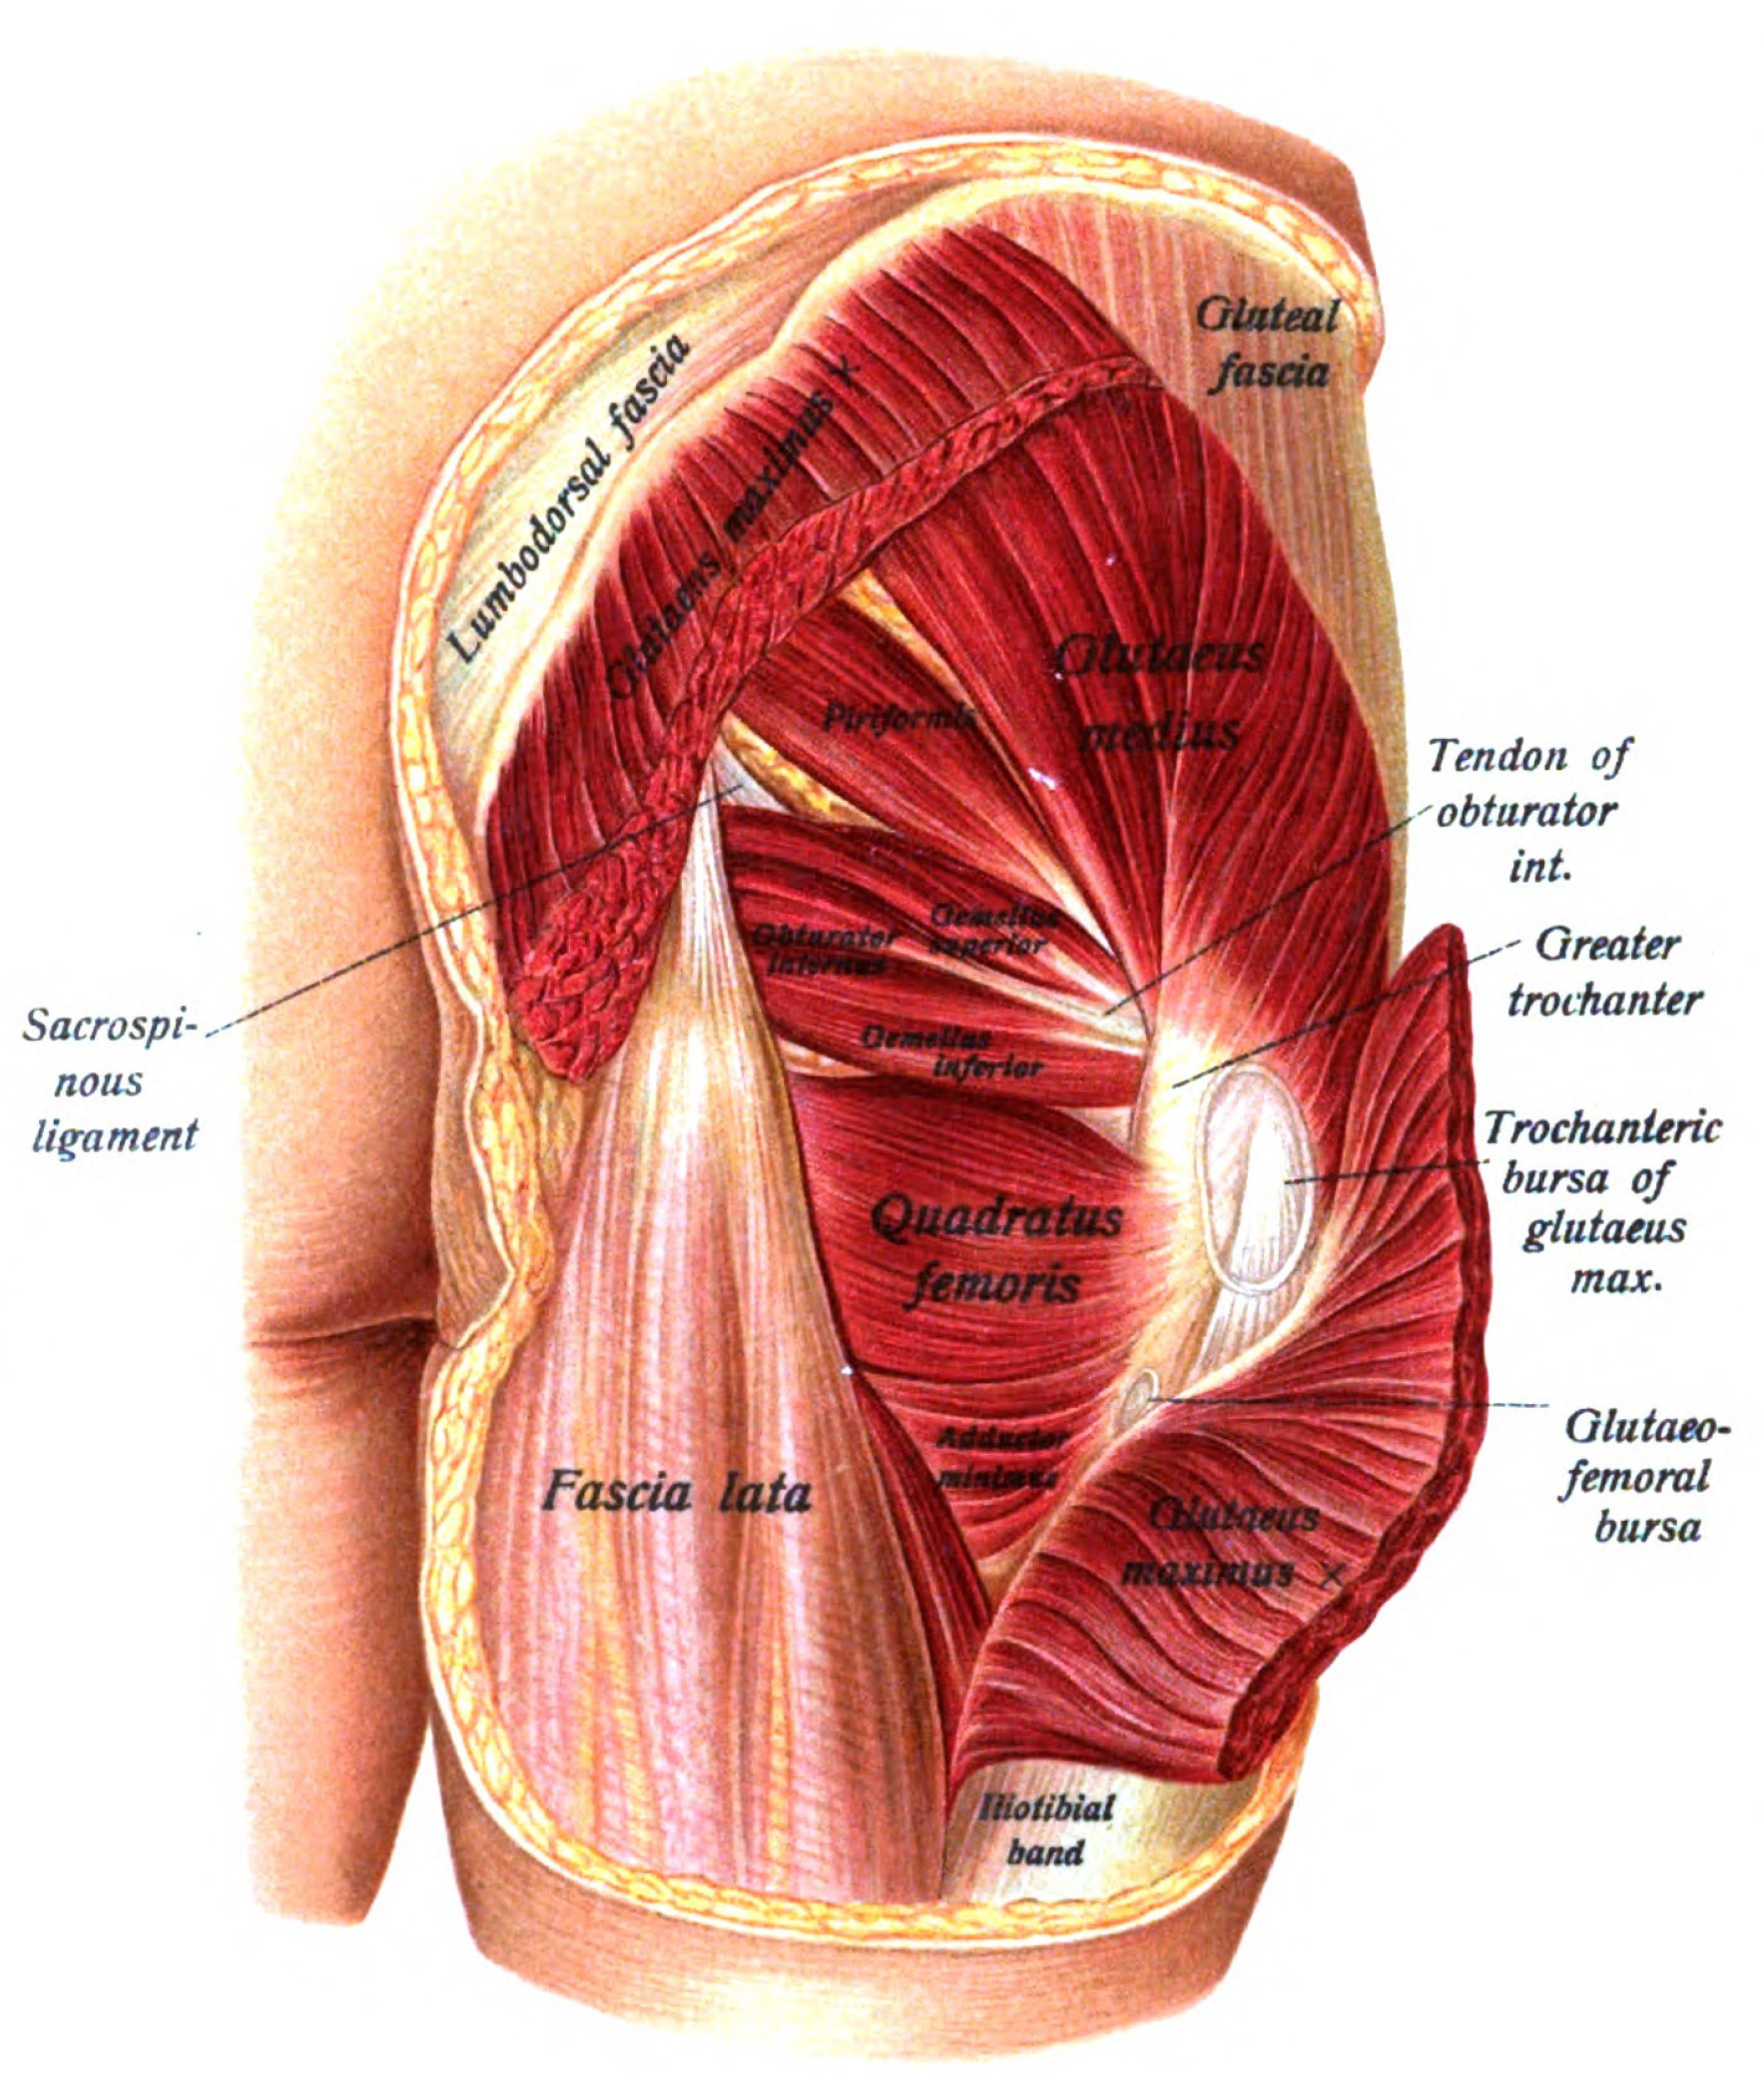 medical anatomy of the bum - Google Search | Pre - Collection ...